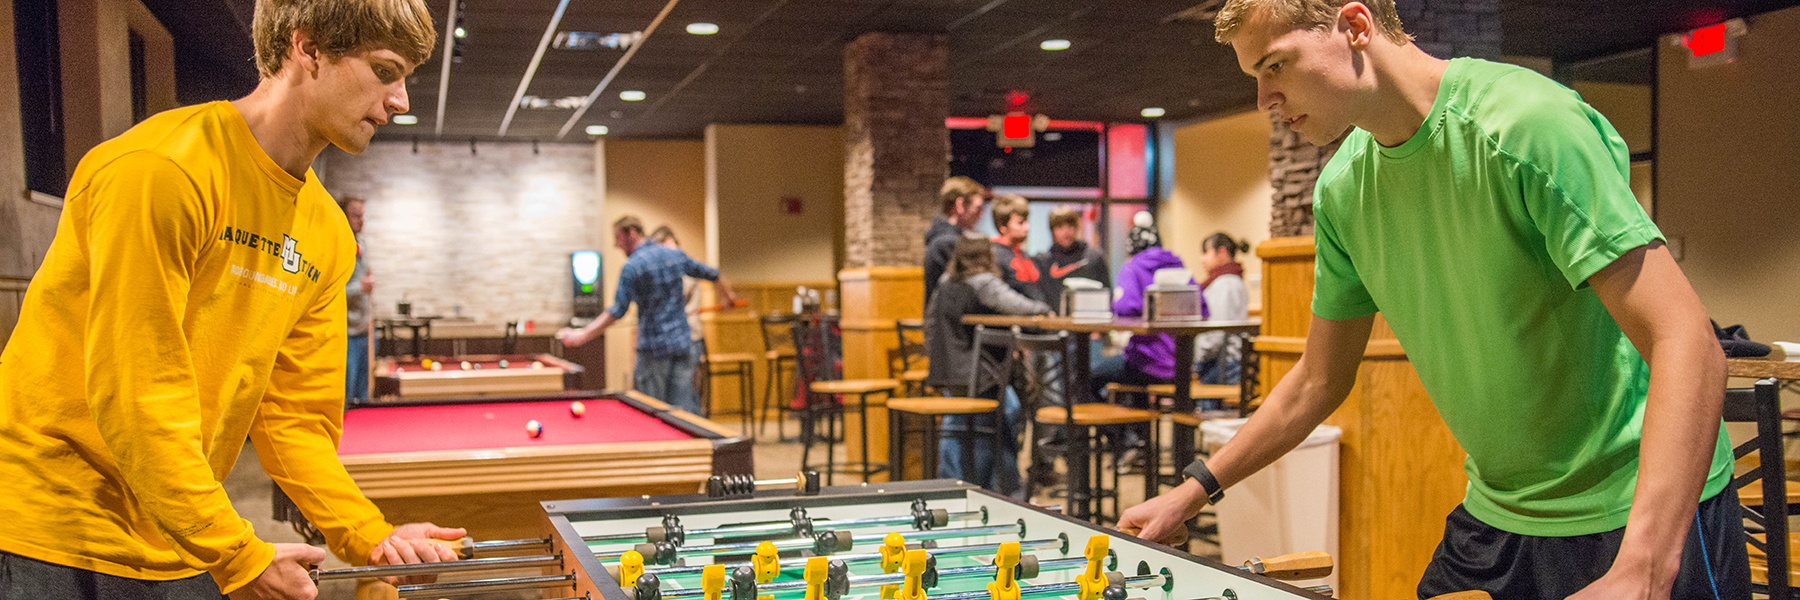 students play a game of foosball in a room with a pool table and others mingling